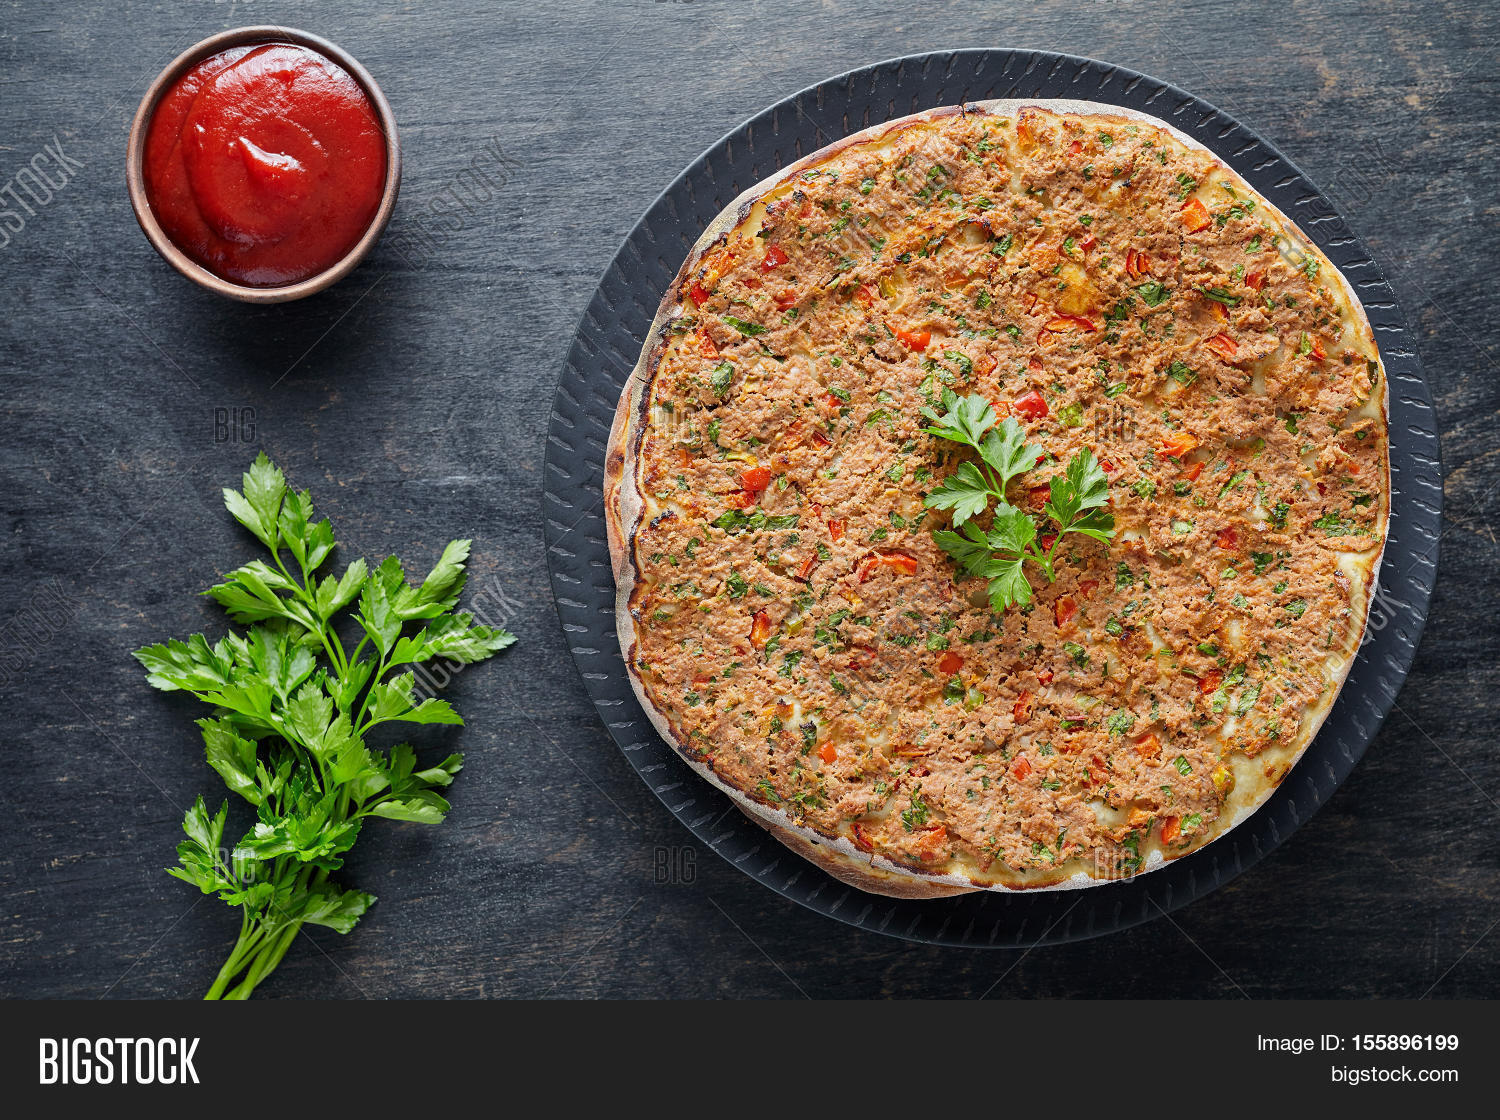 Lahmacun Traditional Image & Photo (Free Trial) | Bigstock